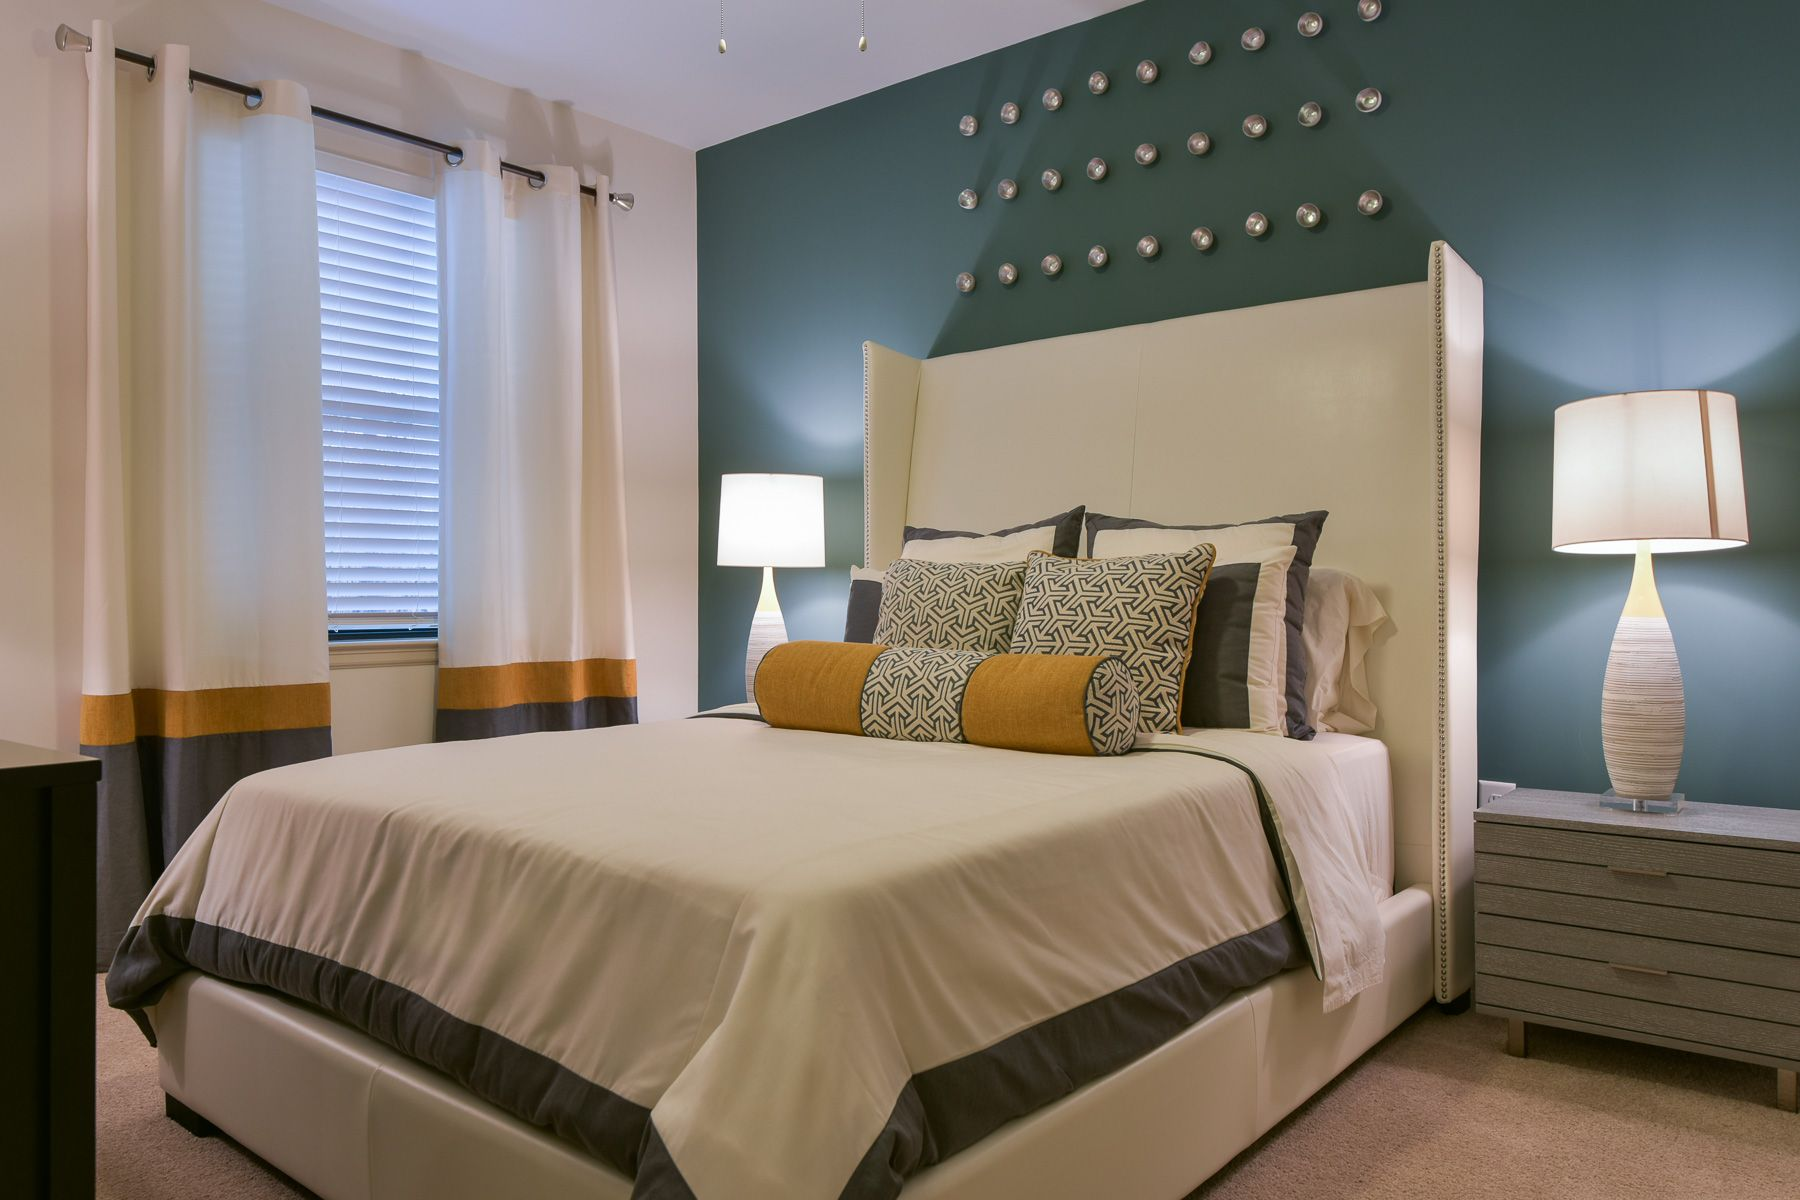 Encore clairmont in georgia bedroom with dusty blue accent wall